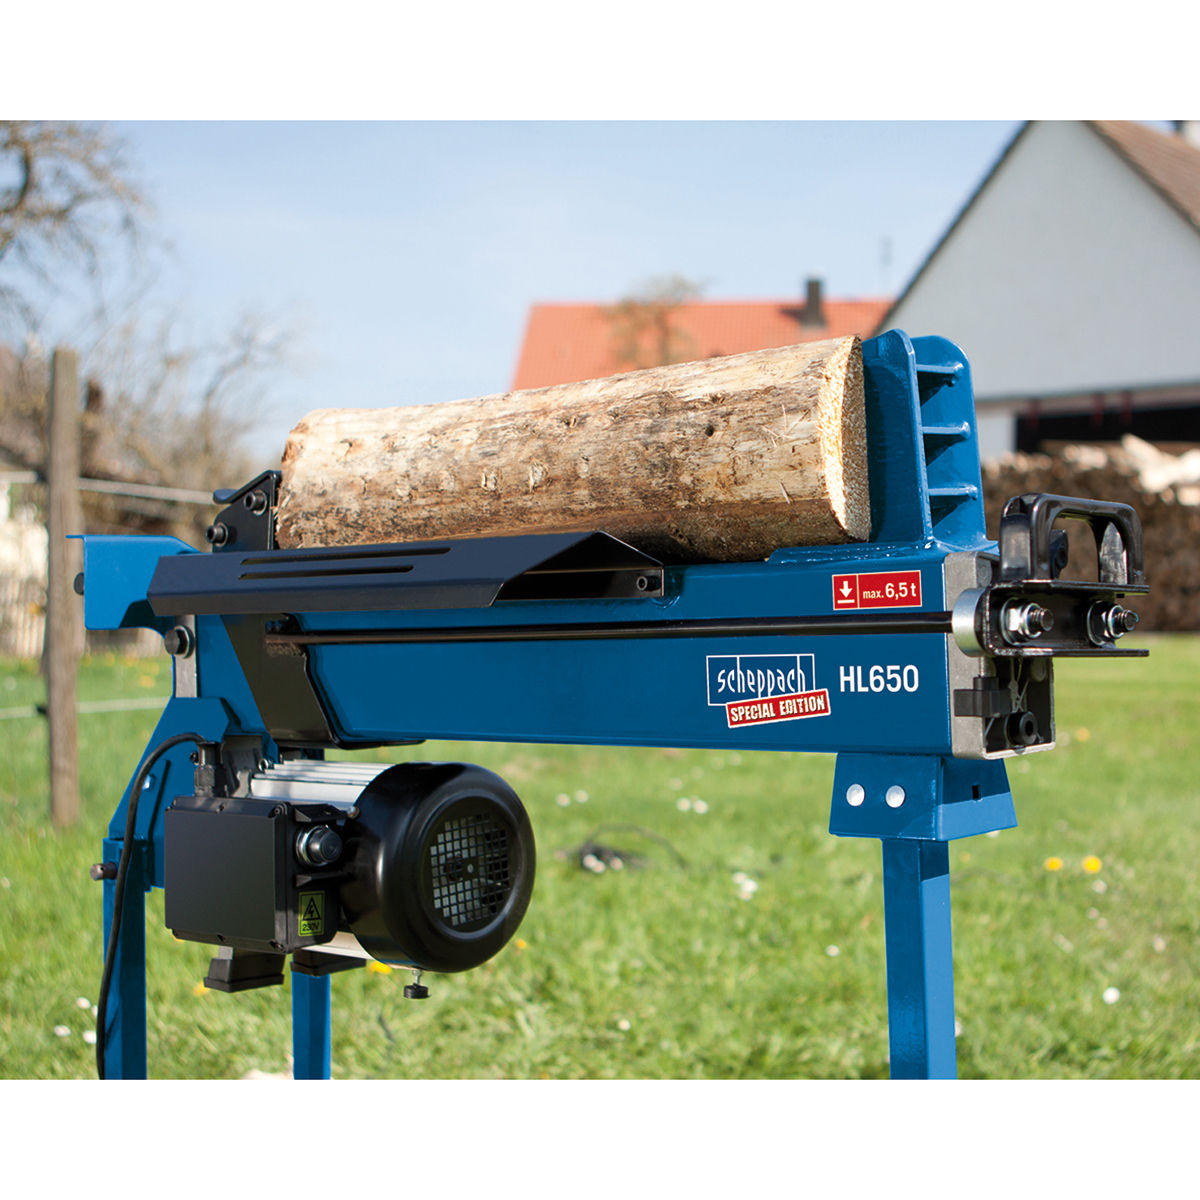 toolstop scheppach hl650 electric log splitter 6.5 ton 240v